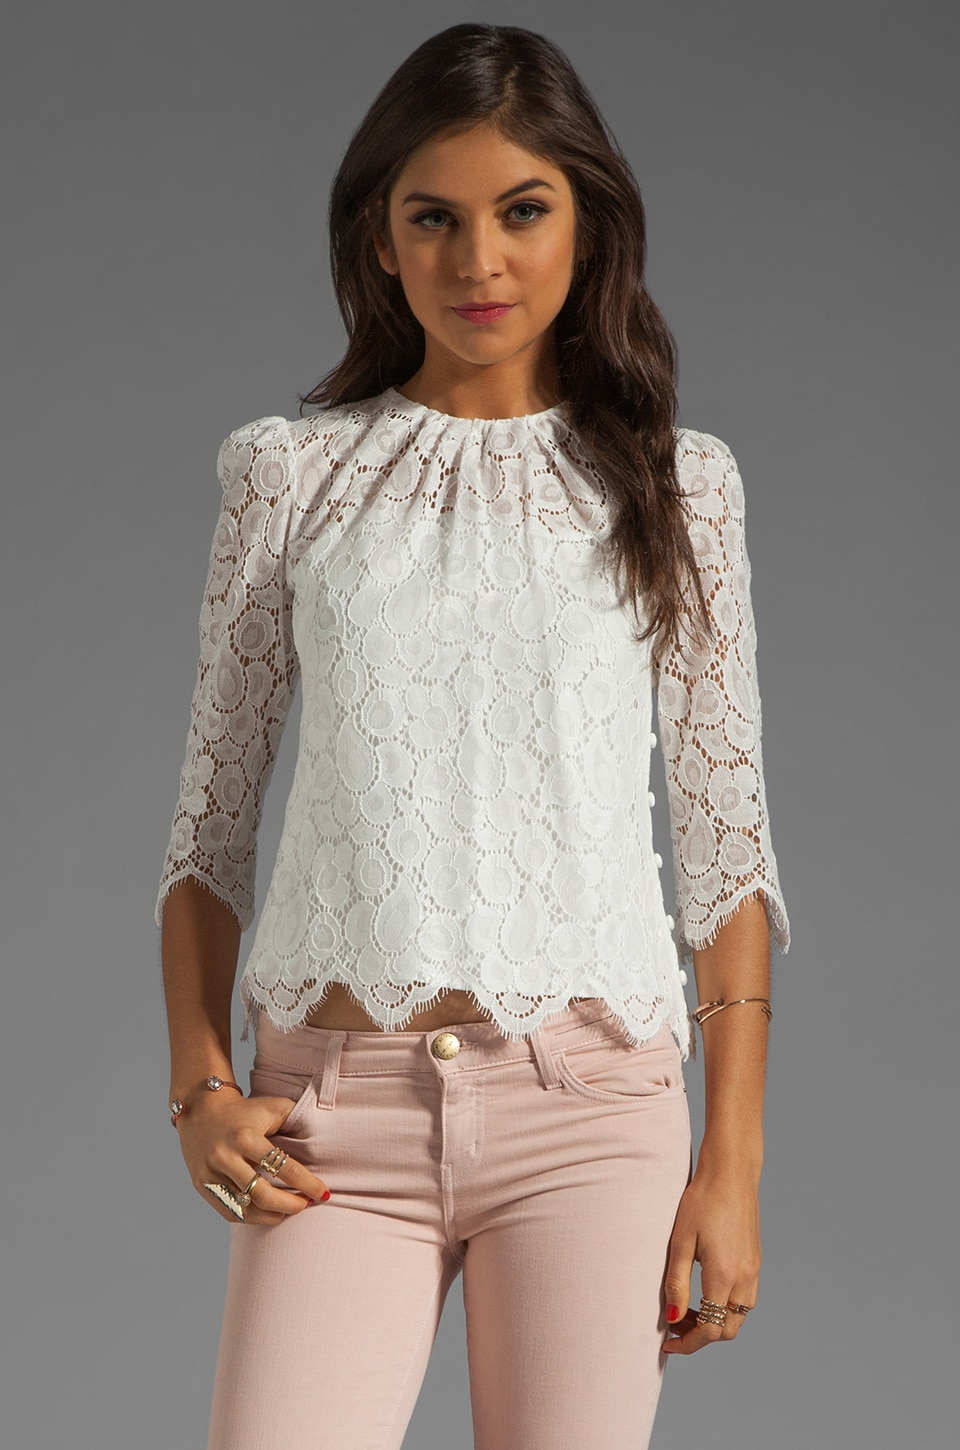 MILLY Begonia Scallop Lace Ivy Blouse in Ecru